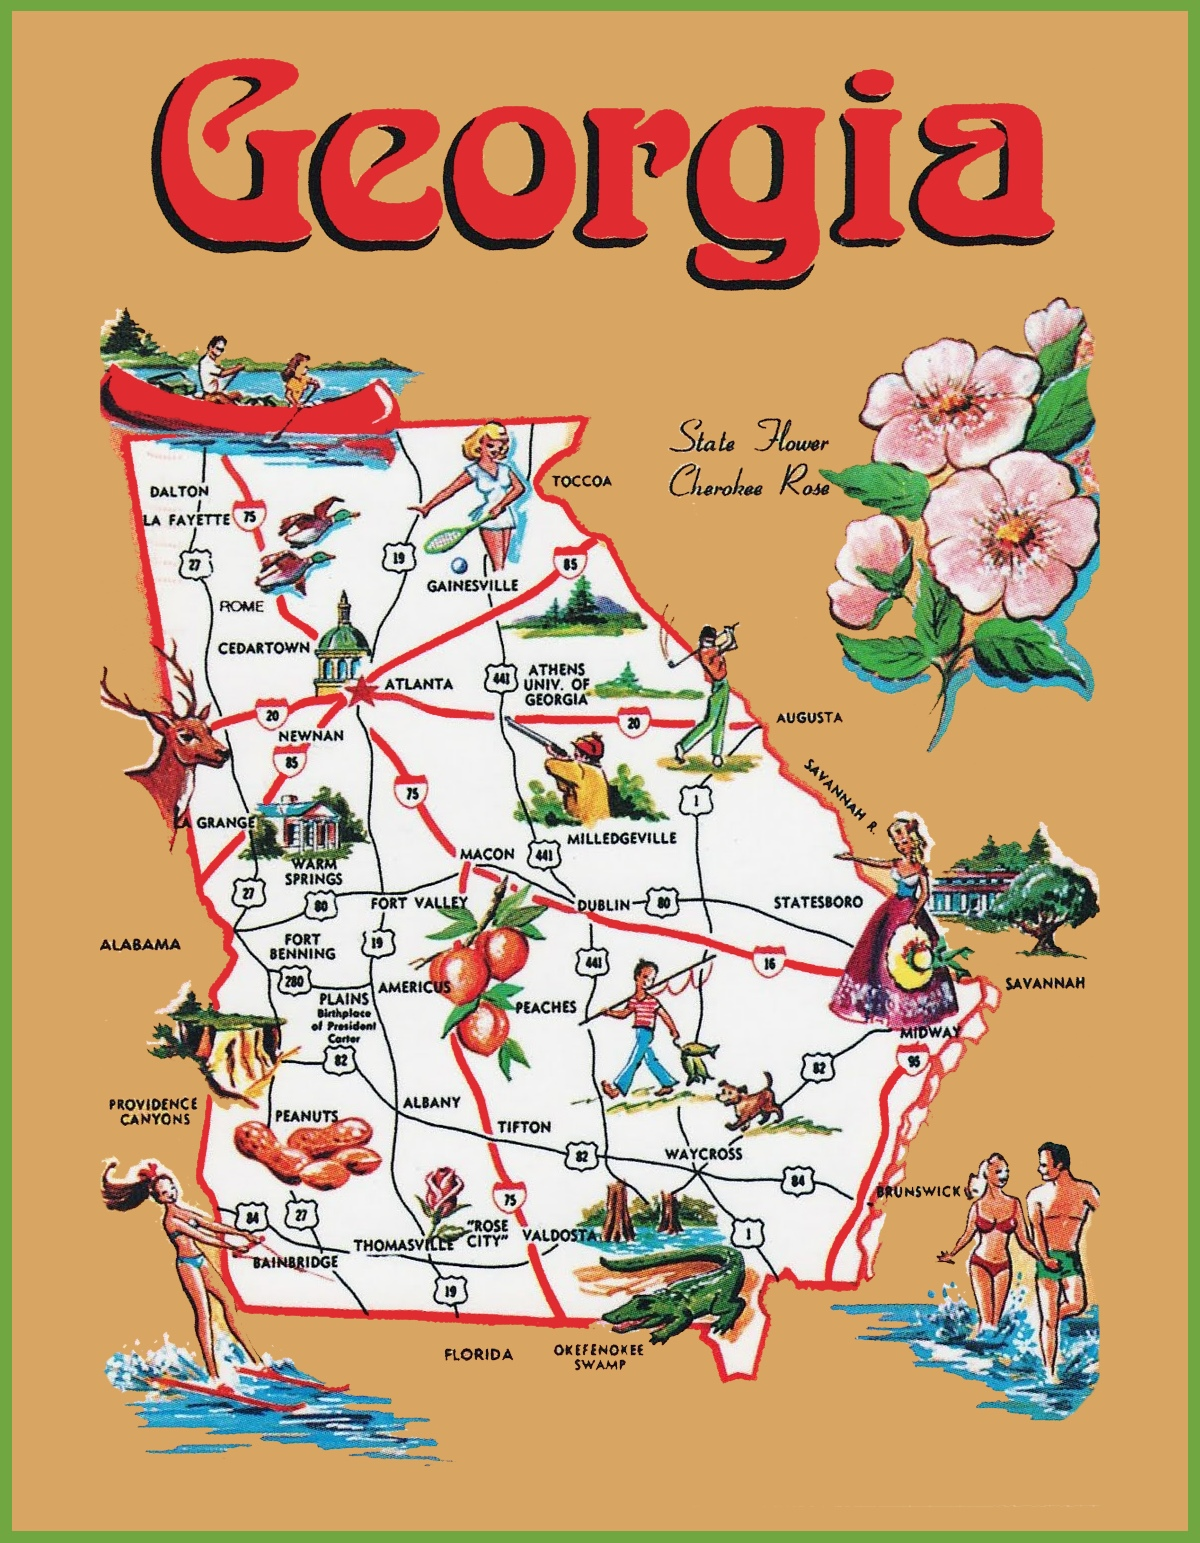 Pictorial travel map of Georgia on georgia coat of arms usa, georgia people usa, georgia south america, georgia flag usa, georgia interesting places usa, georgia cartoon, north carolina, georgia state bird usa, ghost towns in georgia usa, south georgia usa, south carolina, home usa, georgia travel usa, georgia climate usa, georgia state america, georgia food usa, georgia history usa, new jersey, georgia city usa, new york, georgia borders,